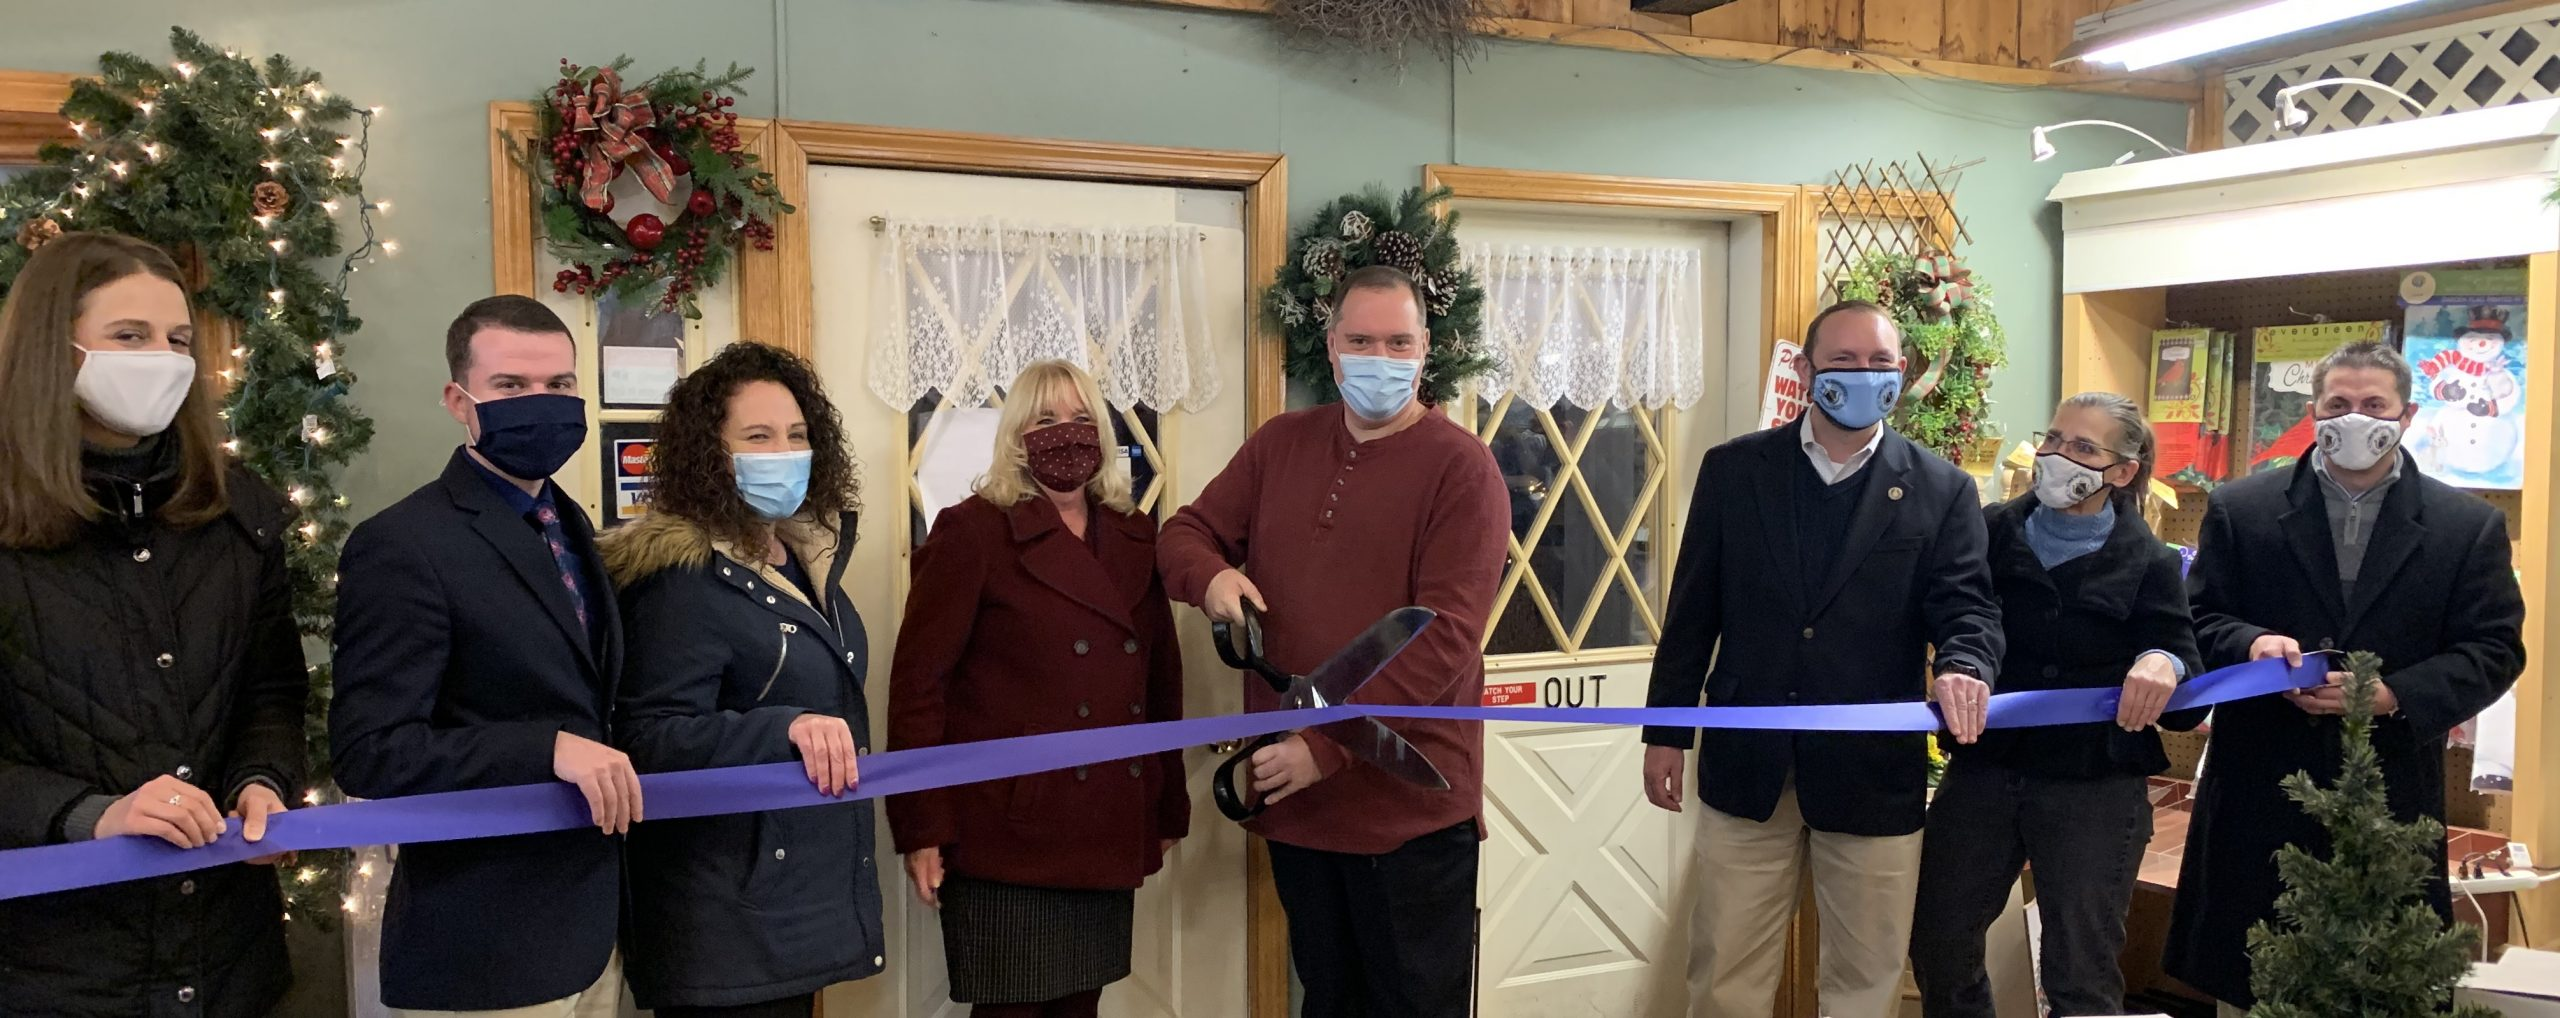 Chamber Hosted Ribbon Cutting to Celebrate New Owner of Valley Florist & Greenhouse